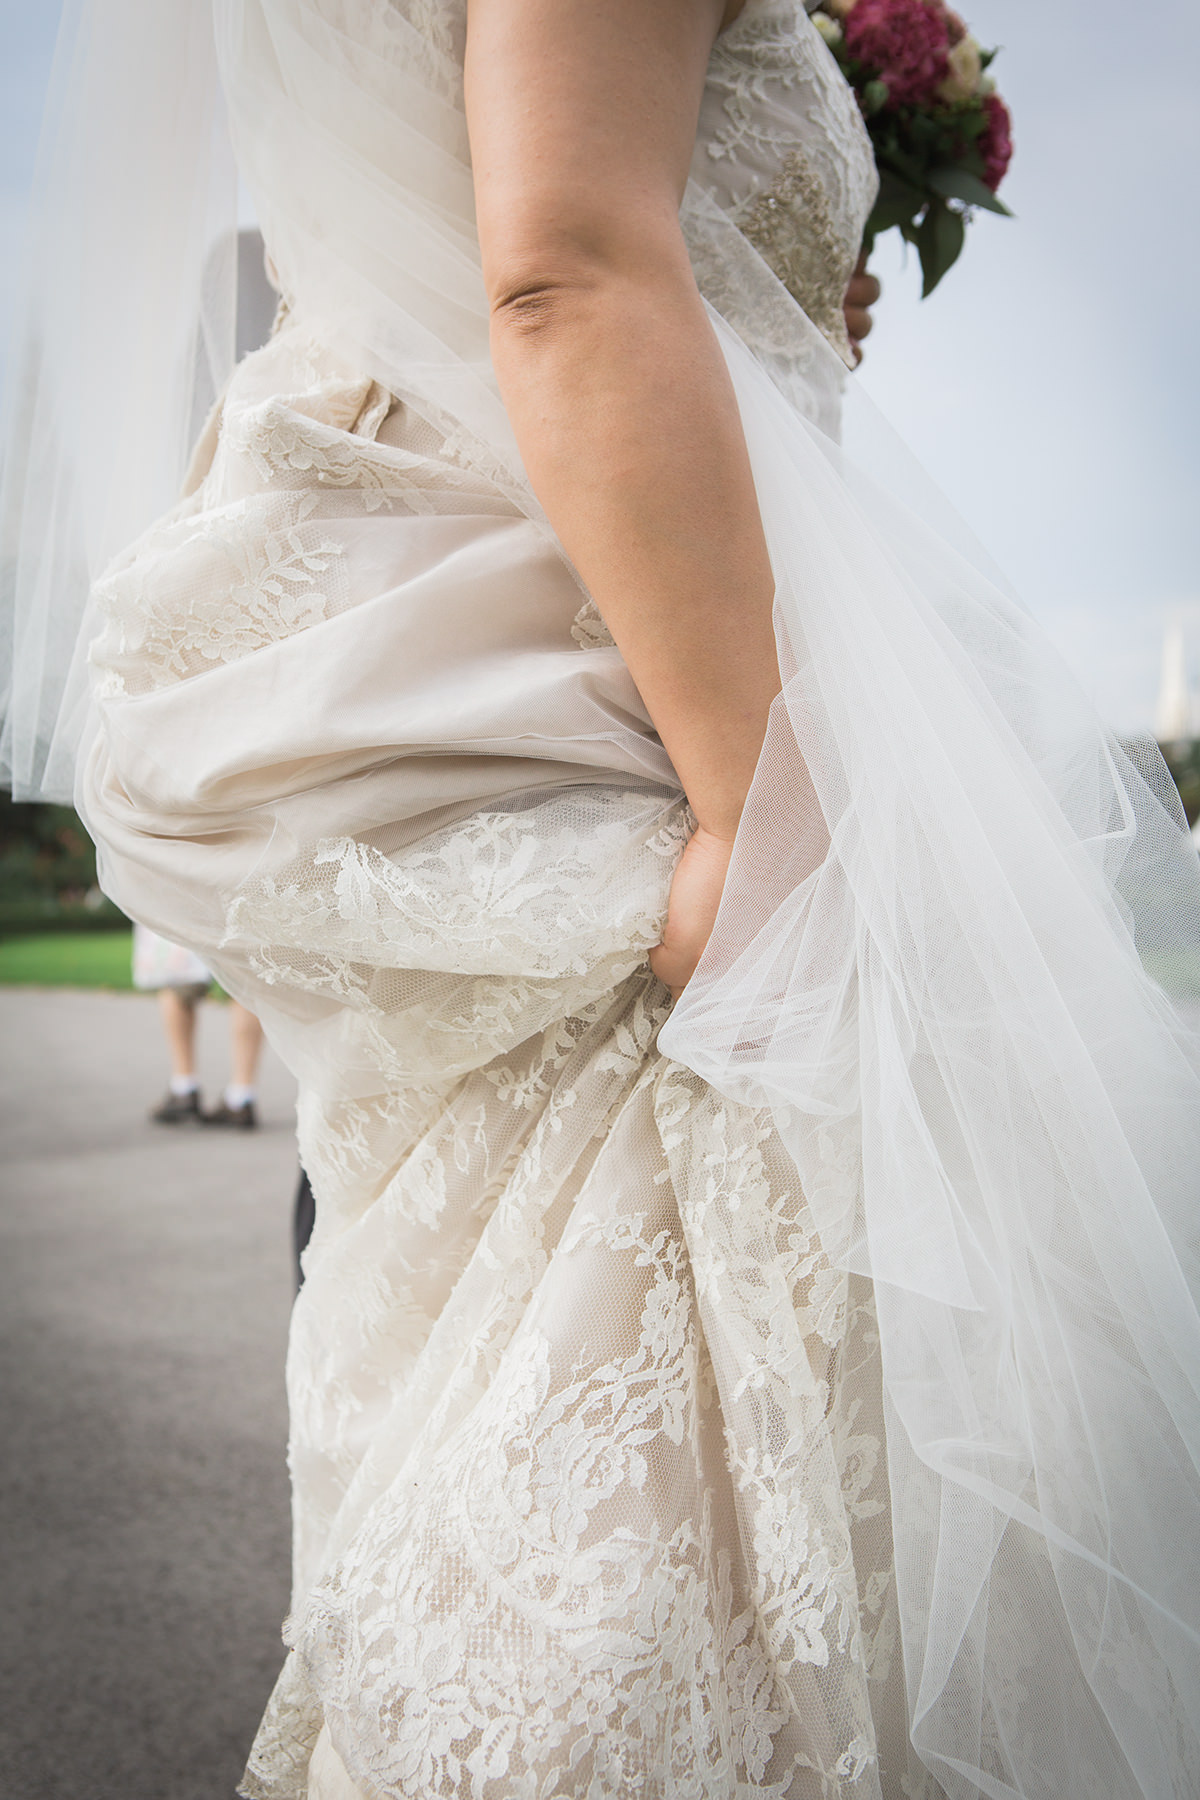 wedding-photography-vienna-woluh-guillaume-81